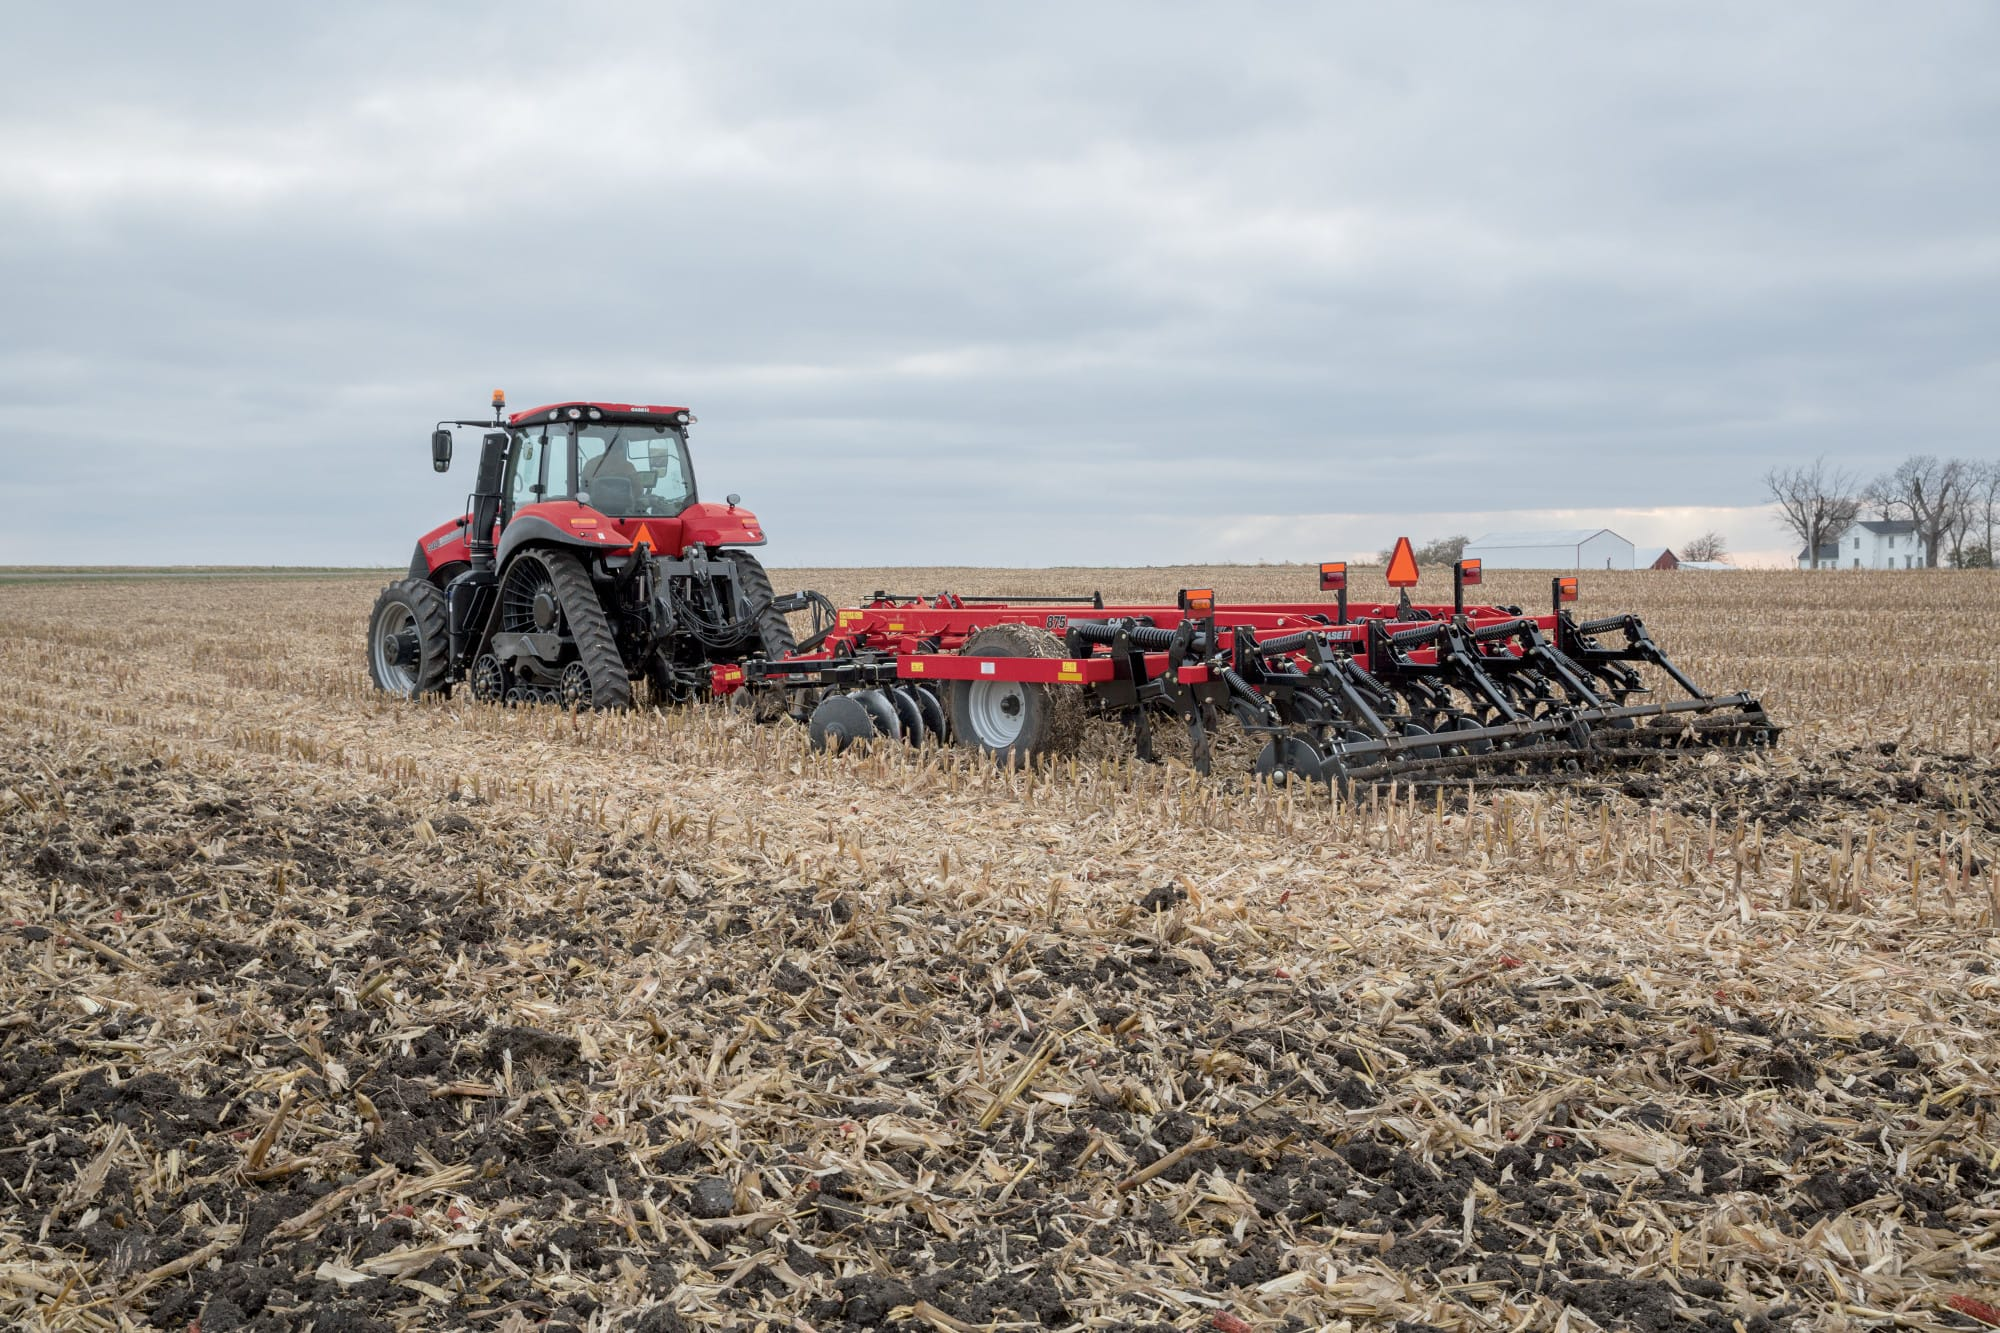 Magnum_340_Rowtrac_with_875_Ecolo Tiger_Disk_Ripper_1142_11 14?width=1280&height=562 case ih troubleshooting support information  at mifinder.co